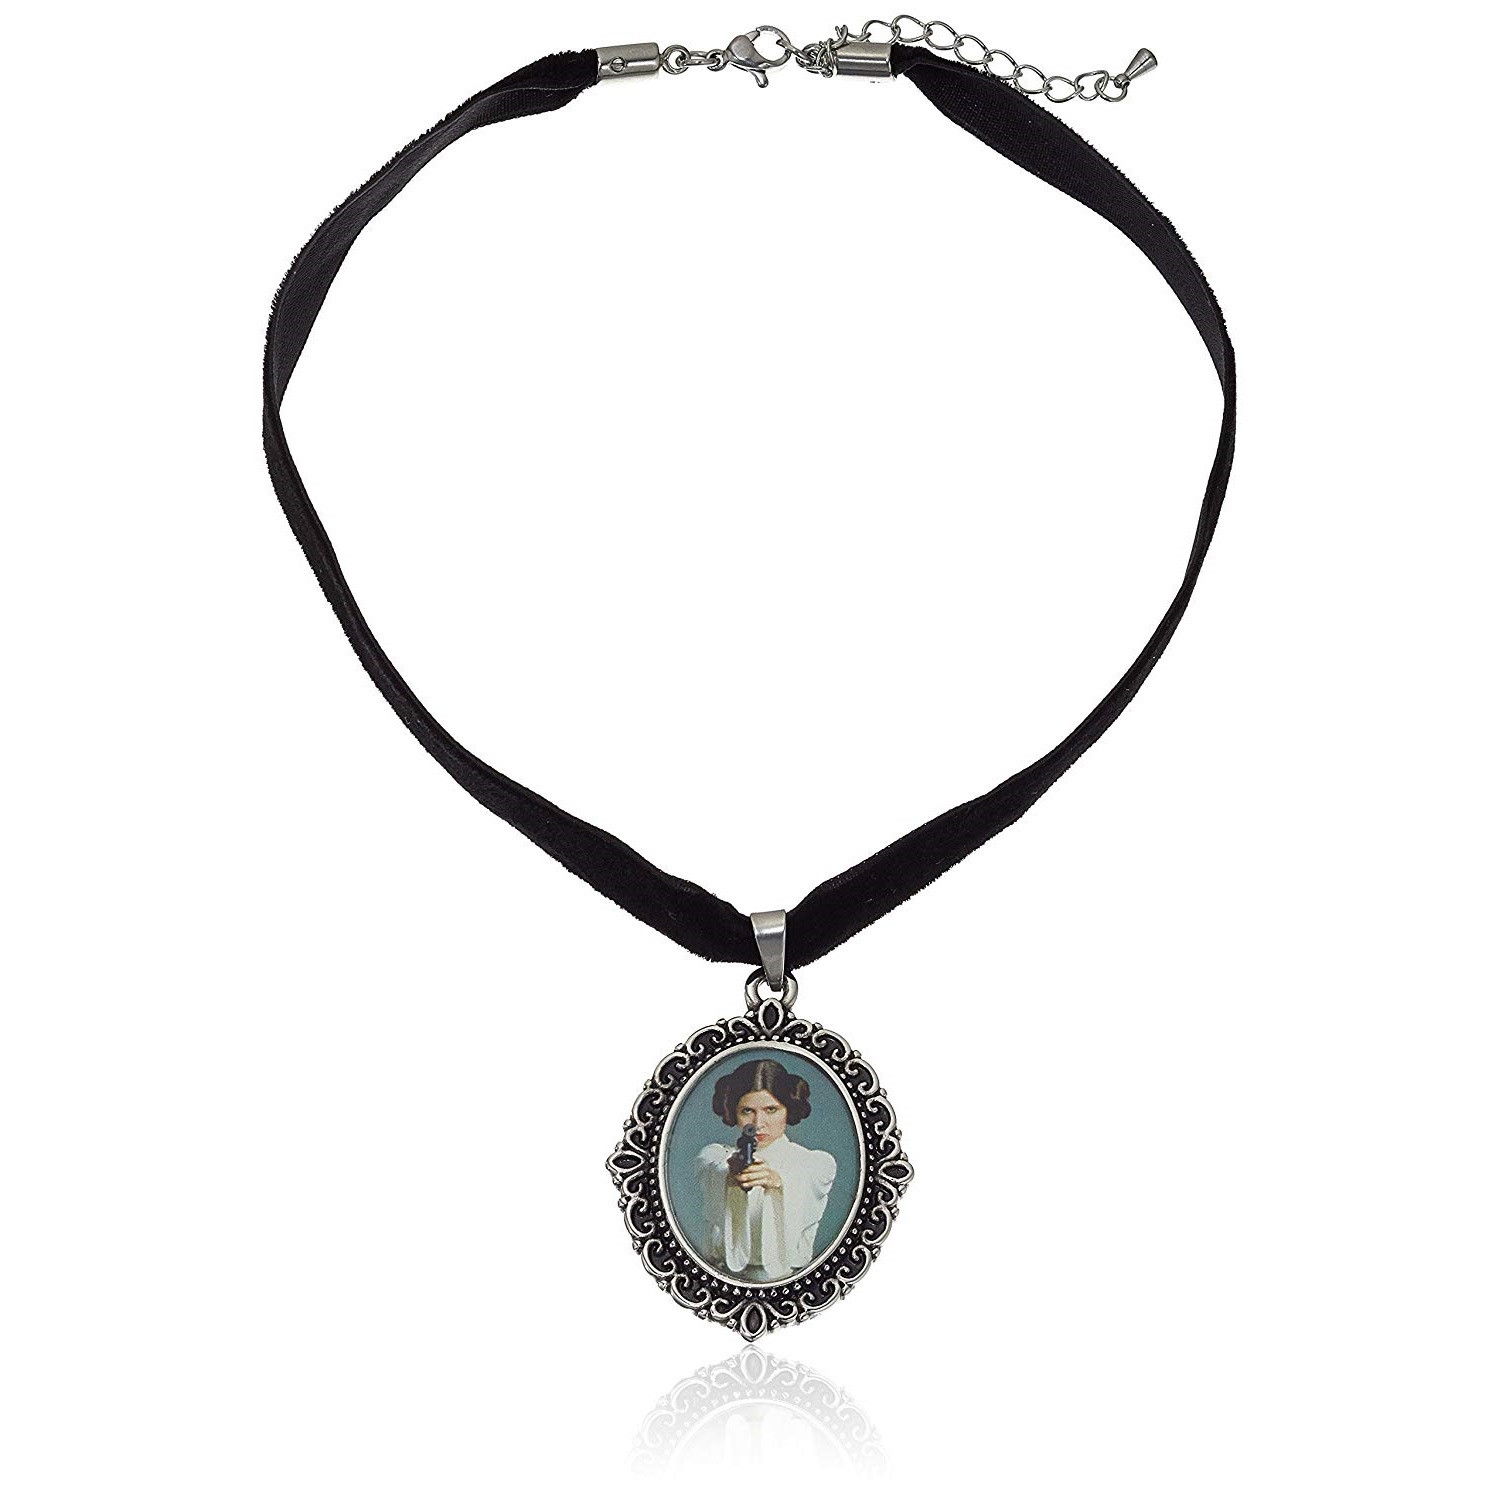 Body Vibe x Star Wars Princess Leia Cameo Necklace on Amazon